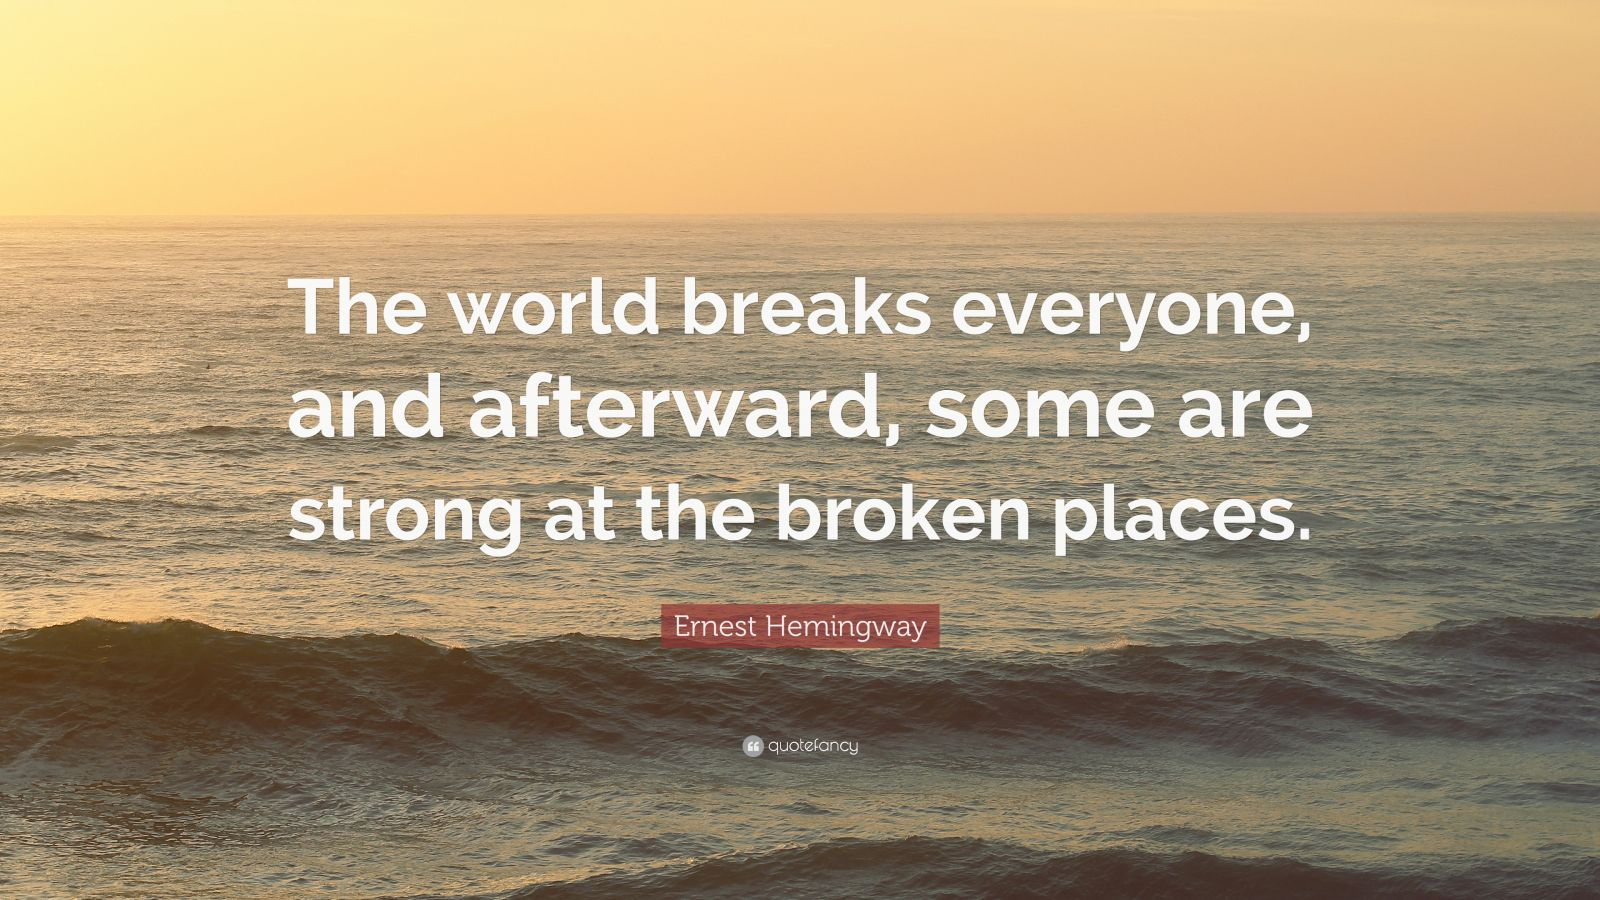 Relationship Quotes Wallpapers Ernest Hemingway Quote The World Breaks Everyone And